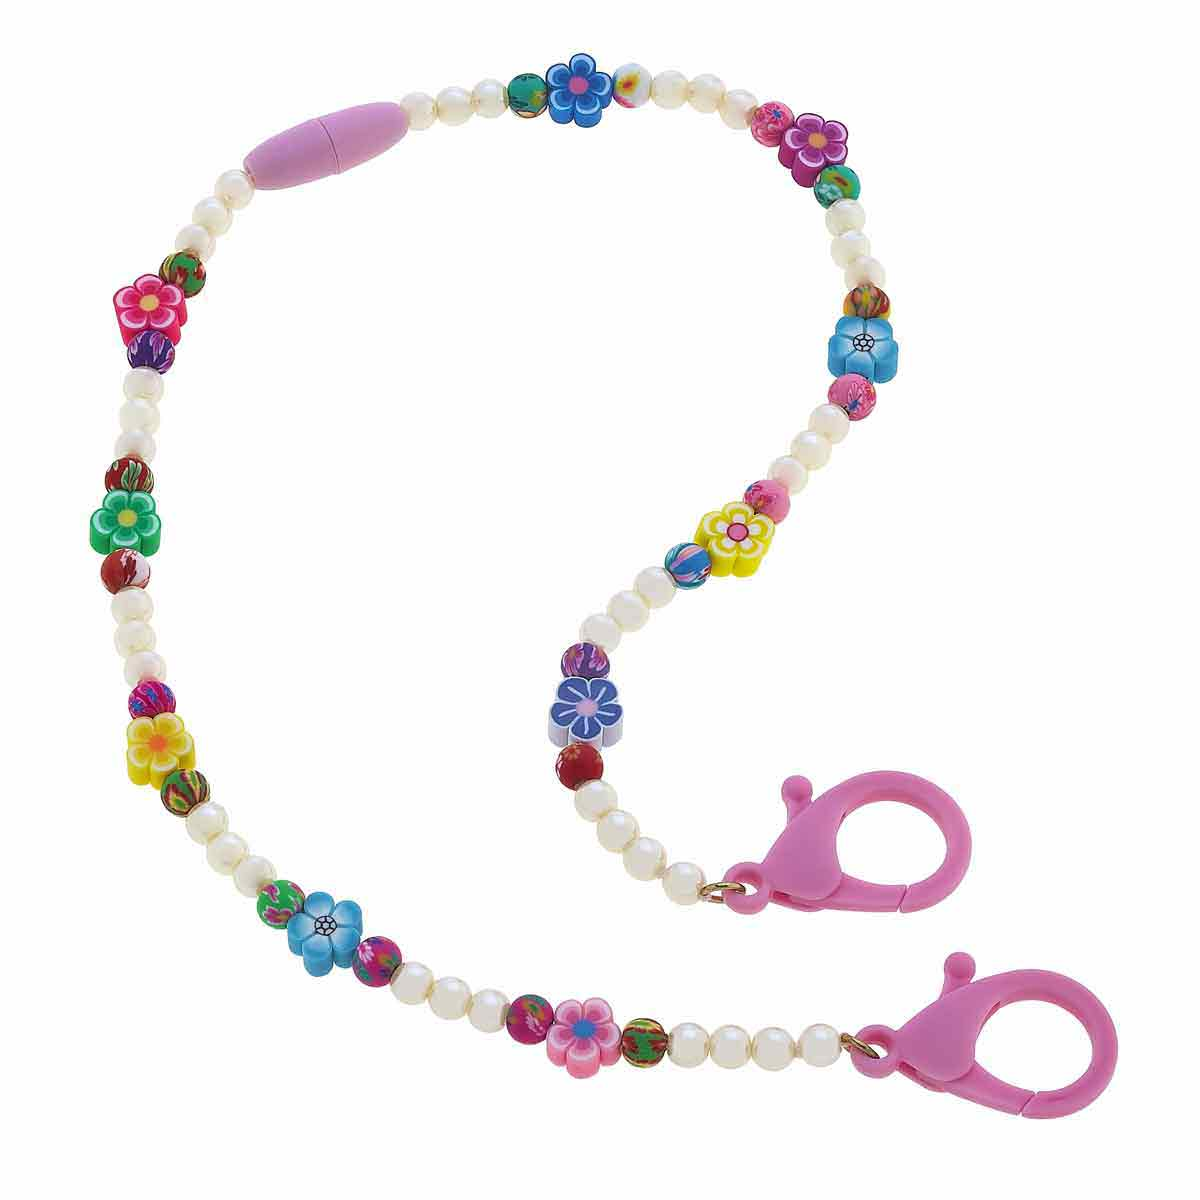 Amelia Children's Beaded Break-a-Way Mask Lanyard in Flowers & Faux Pearls - 20""